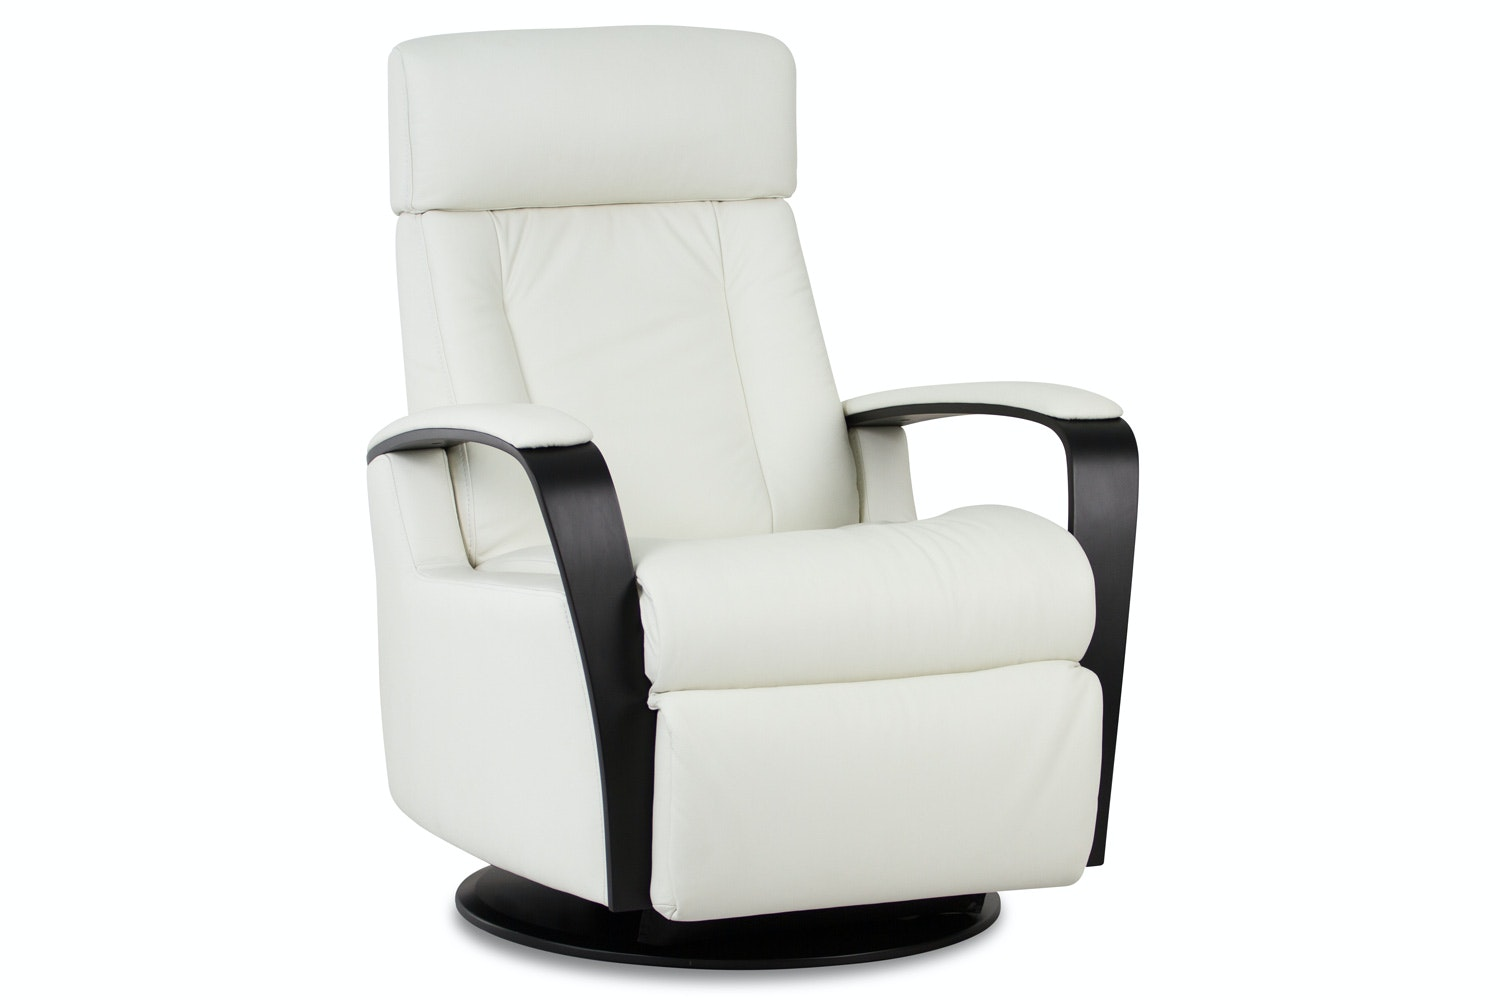 Lotus Recliner Chair - Leather and Wood - Large - Trend- IMG